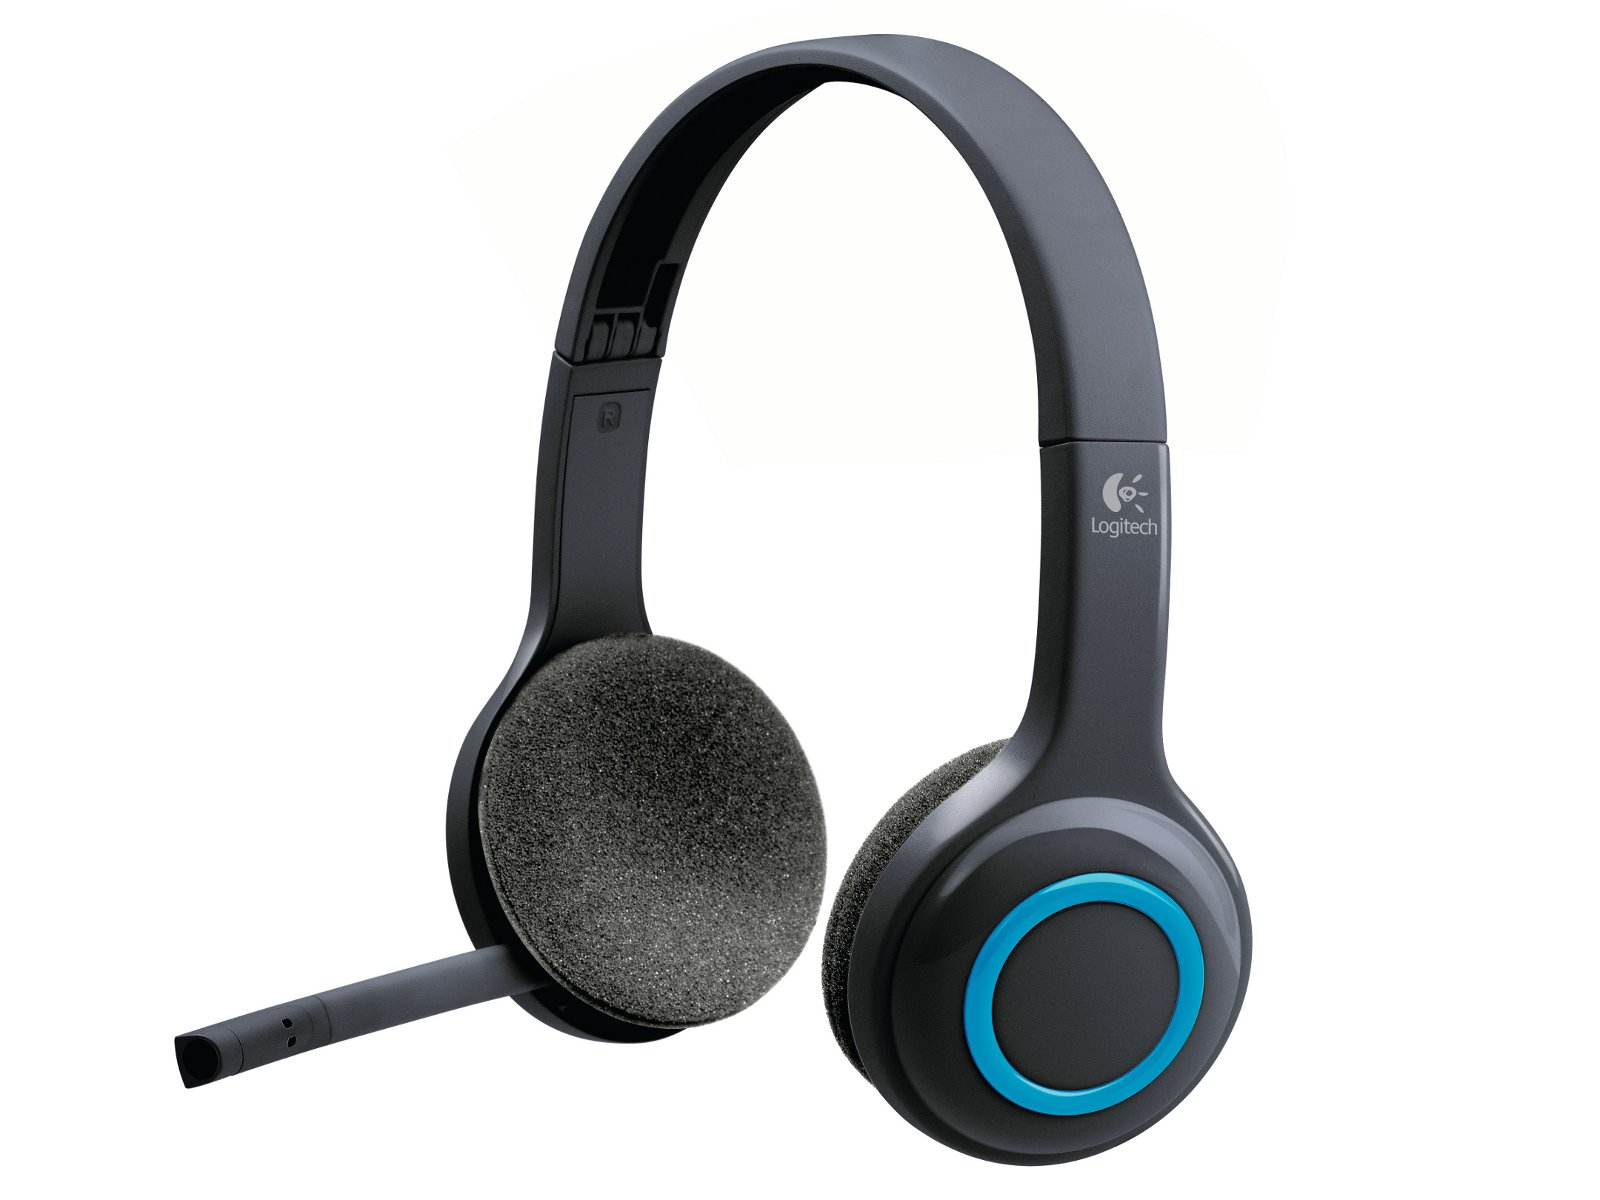 logitech h600 usb wireless headset from dove electronics. Black Bedroom Furniture Sets. Home Design Ideas